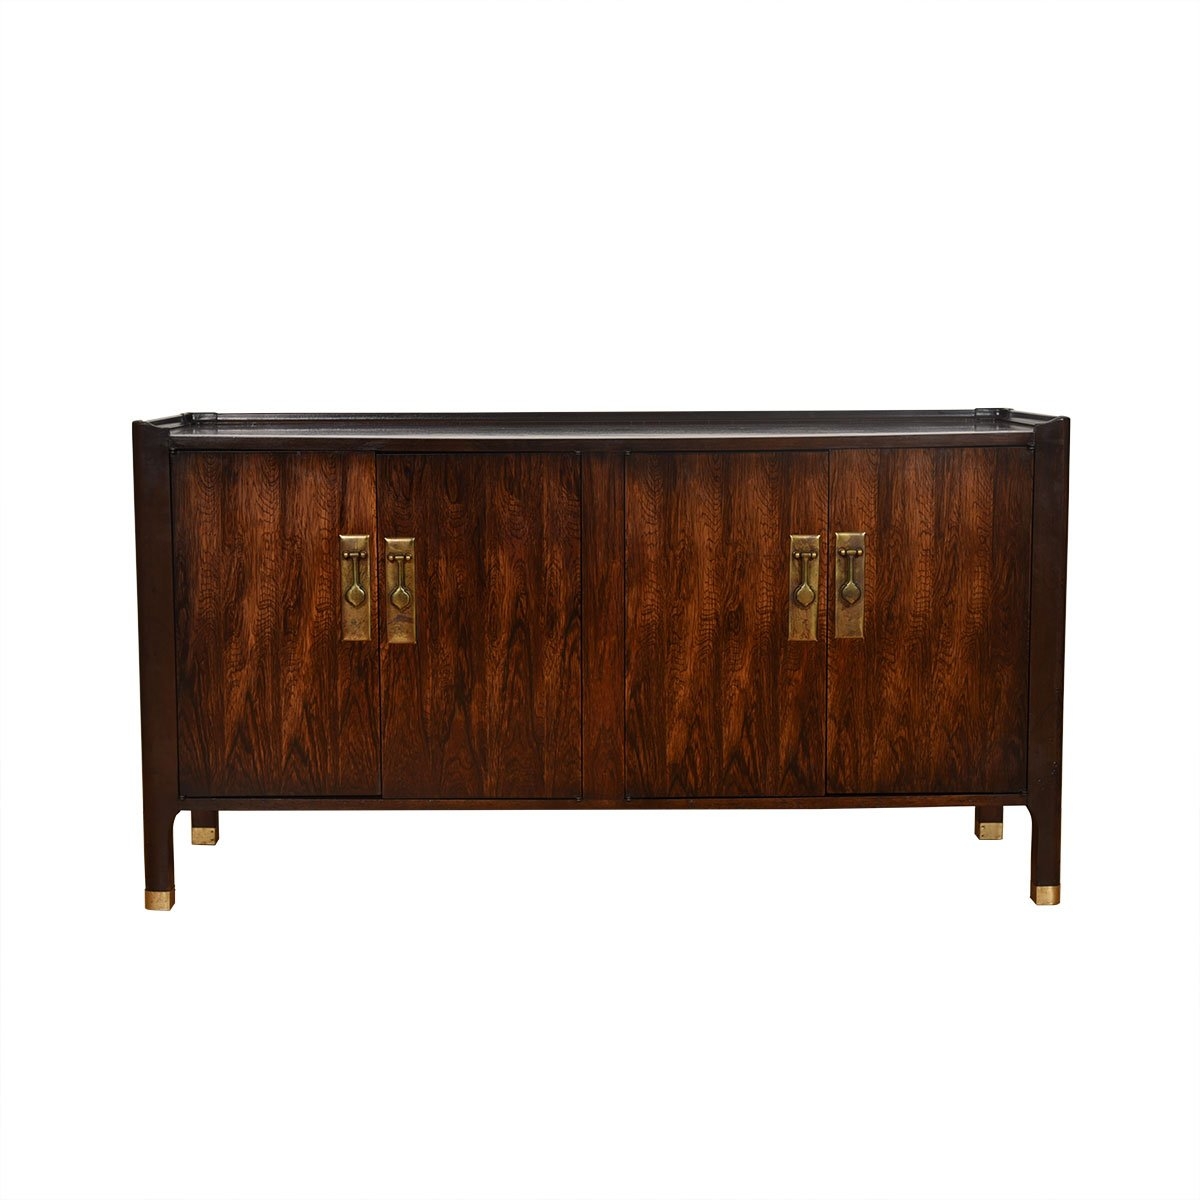 Mid Century Modern Decorative Cabinet w/ Brass Hardware